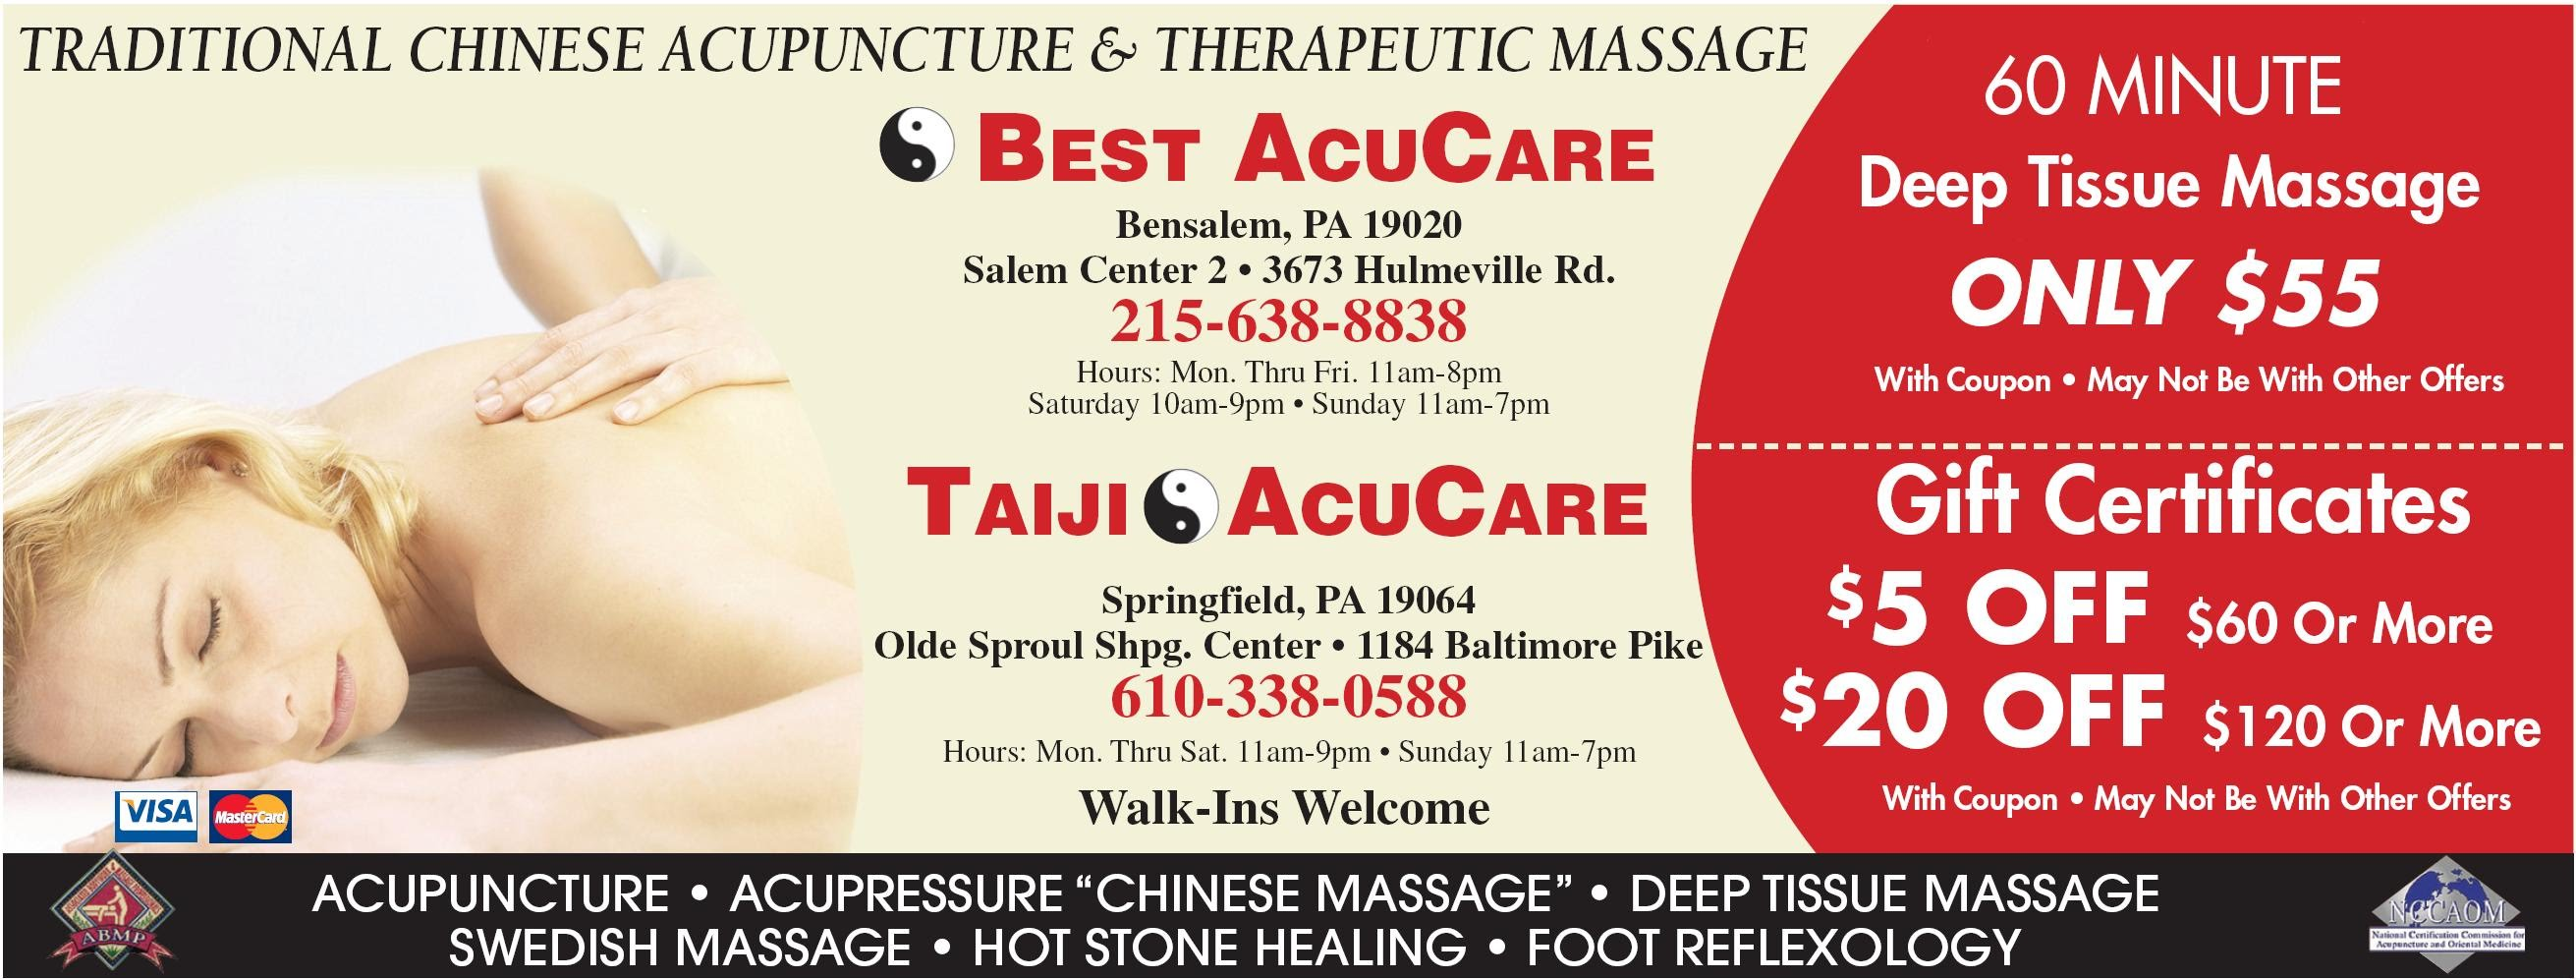 AcuCare Clinic - Acupuncture, Massage & Reflexology near ...